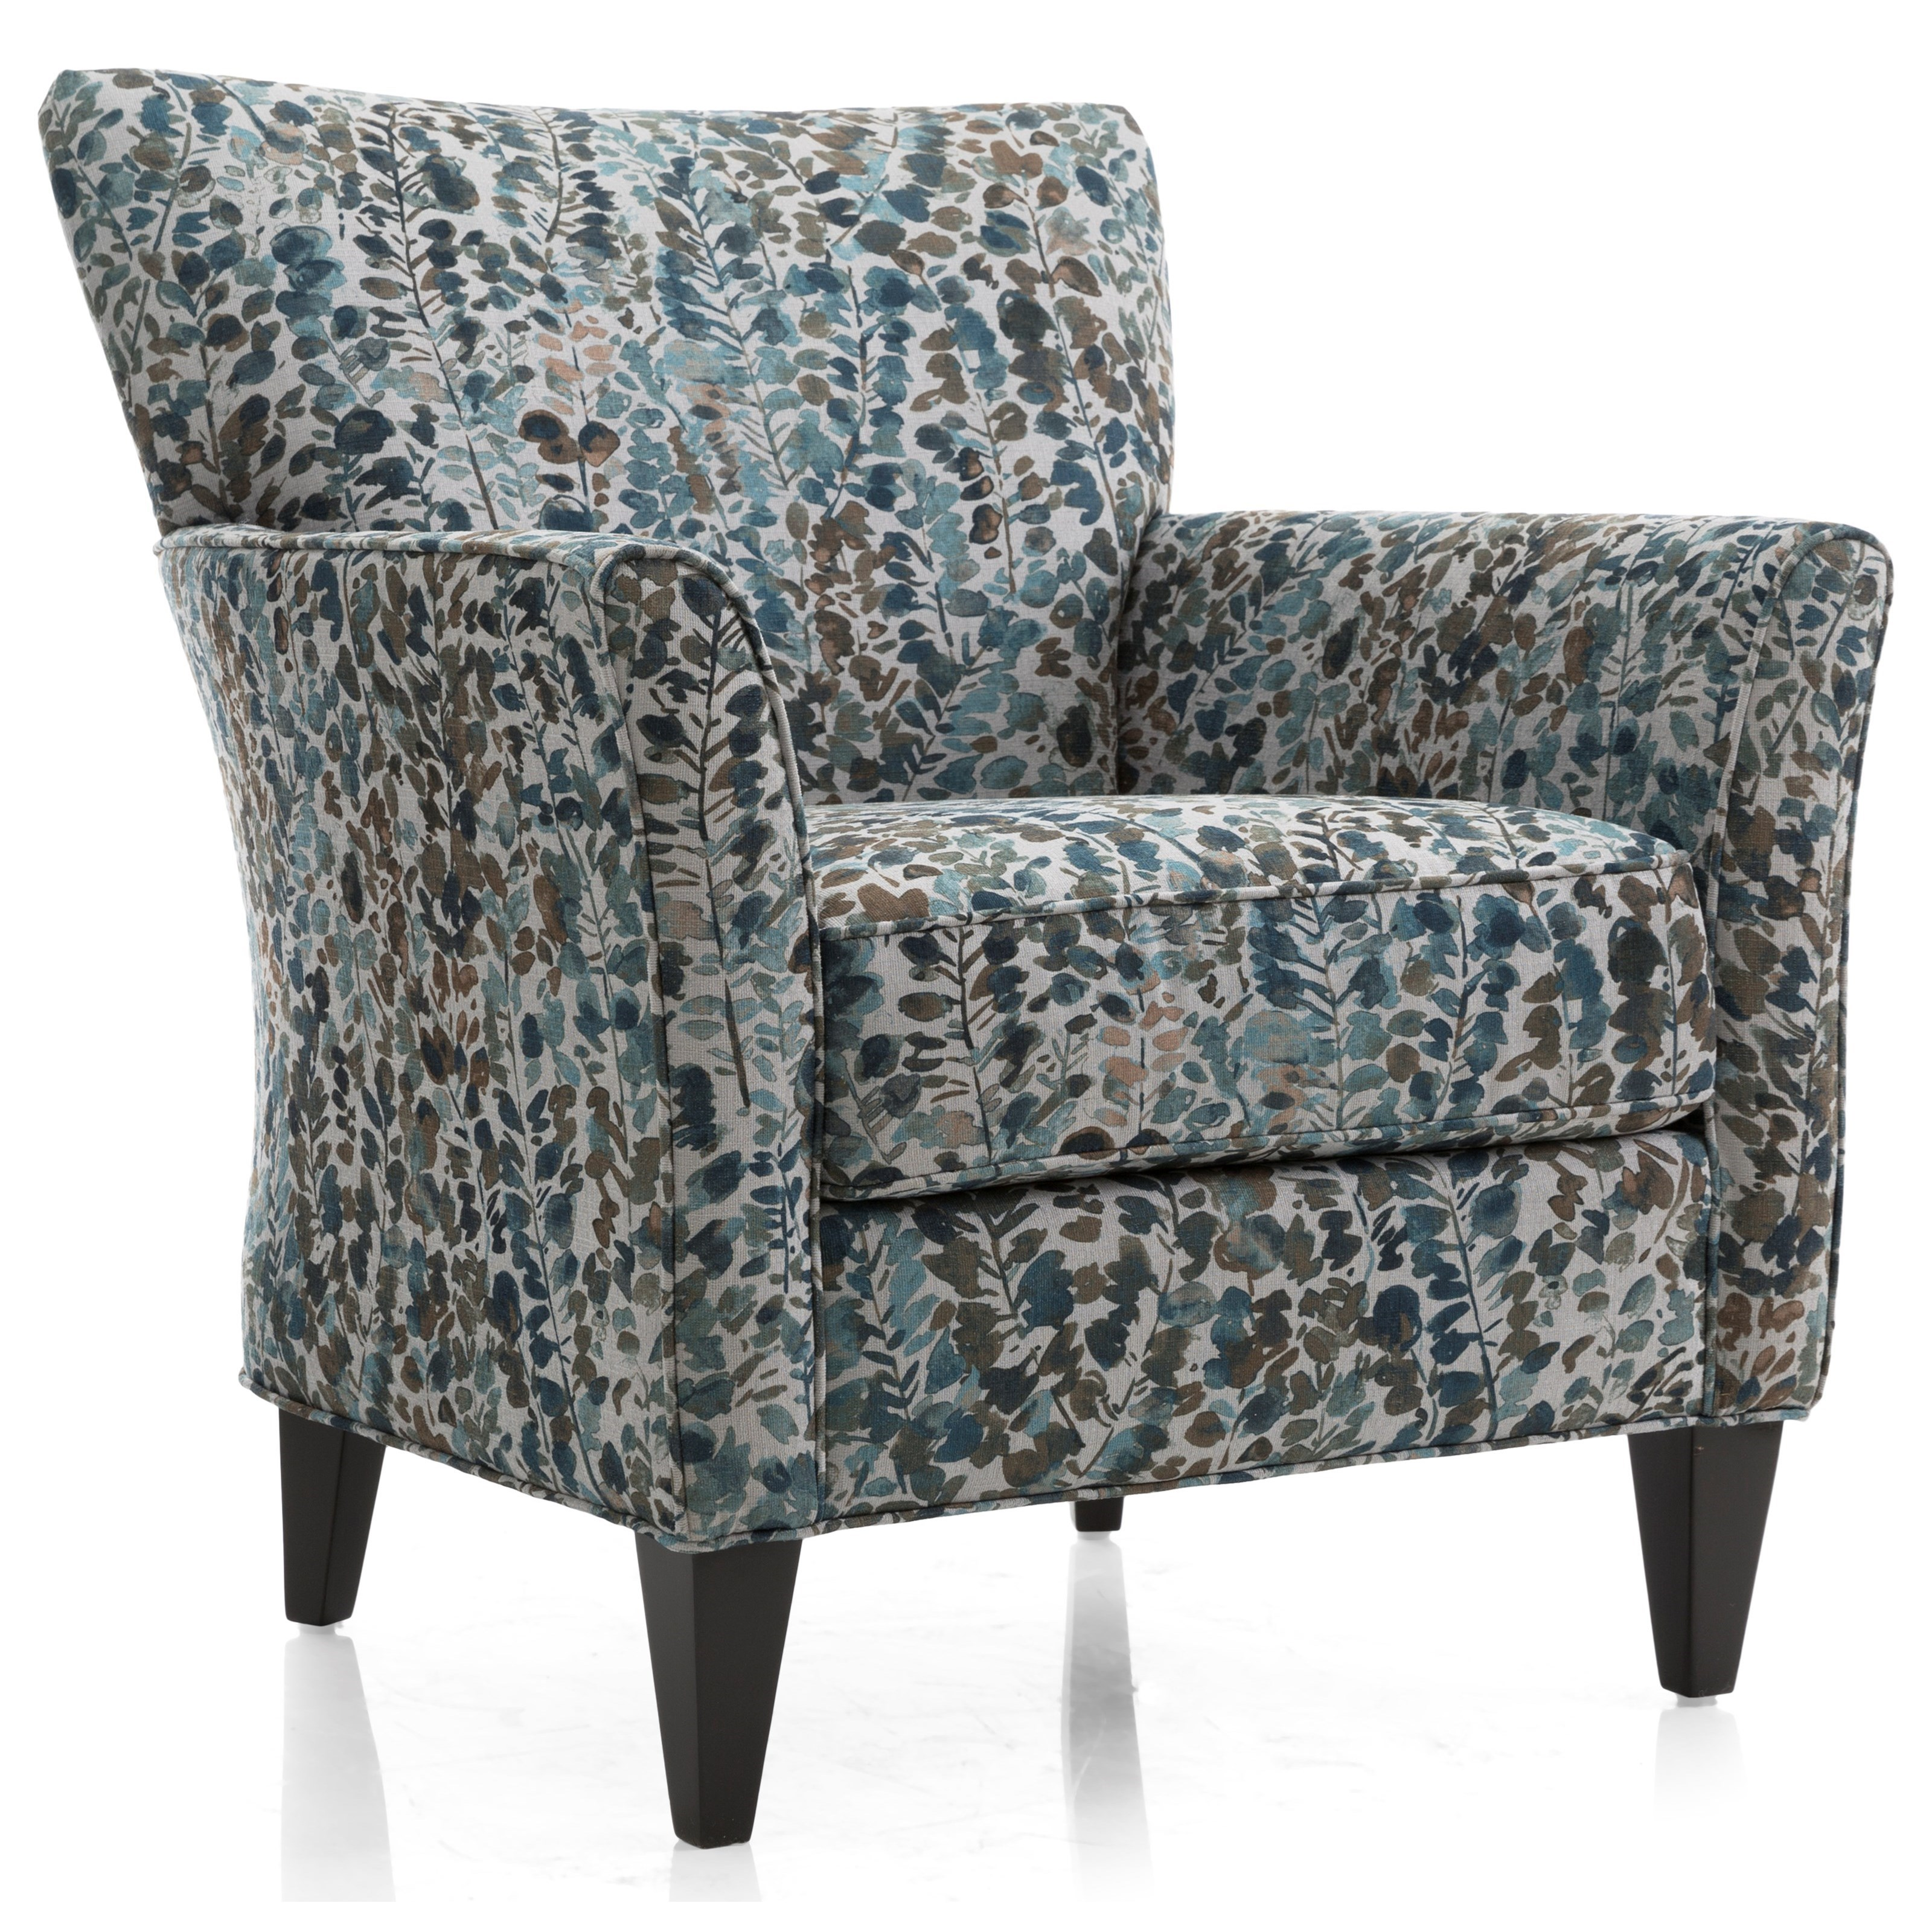 Marla Chair by Taelor Designs at Bennett's Furniture and Mattresses